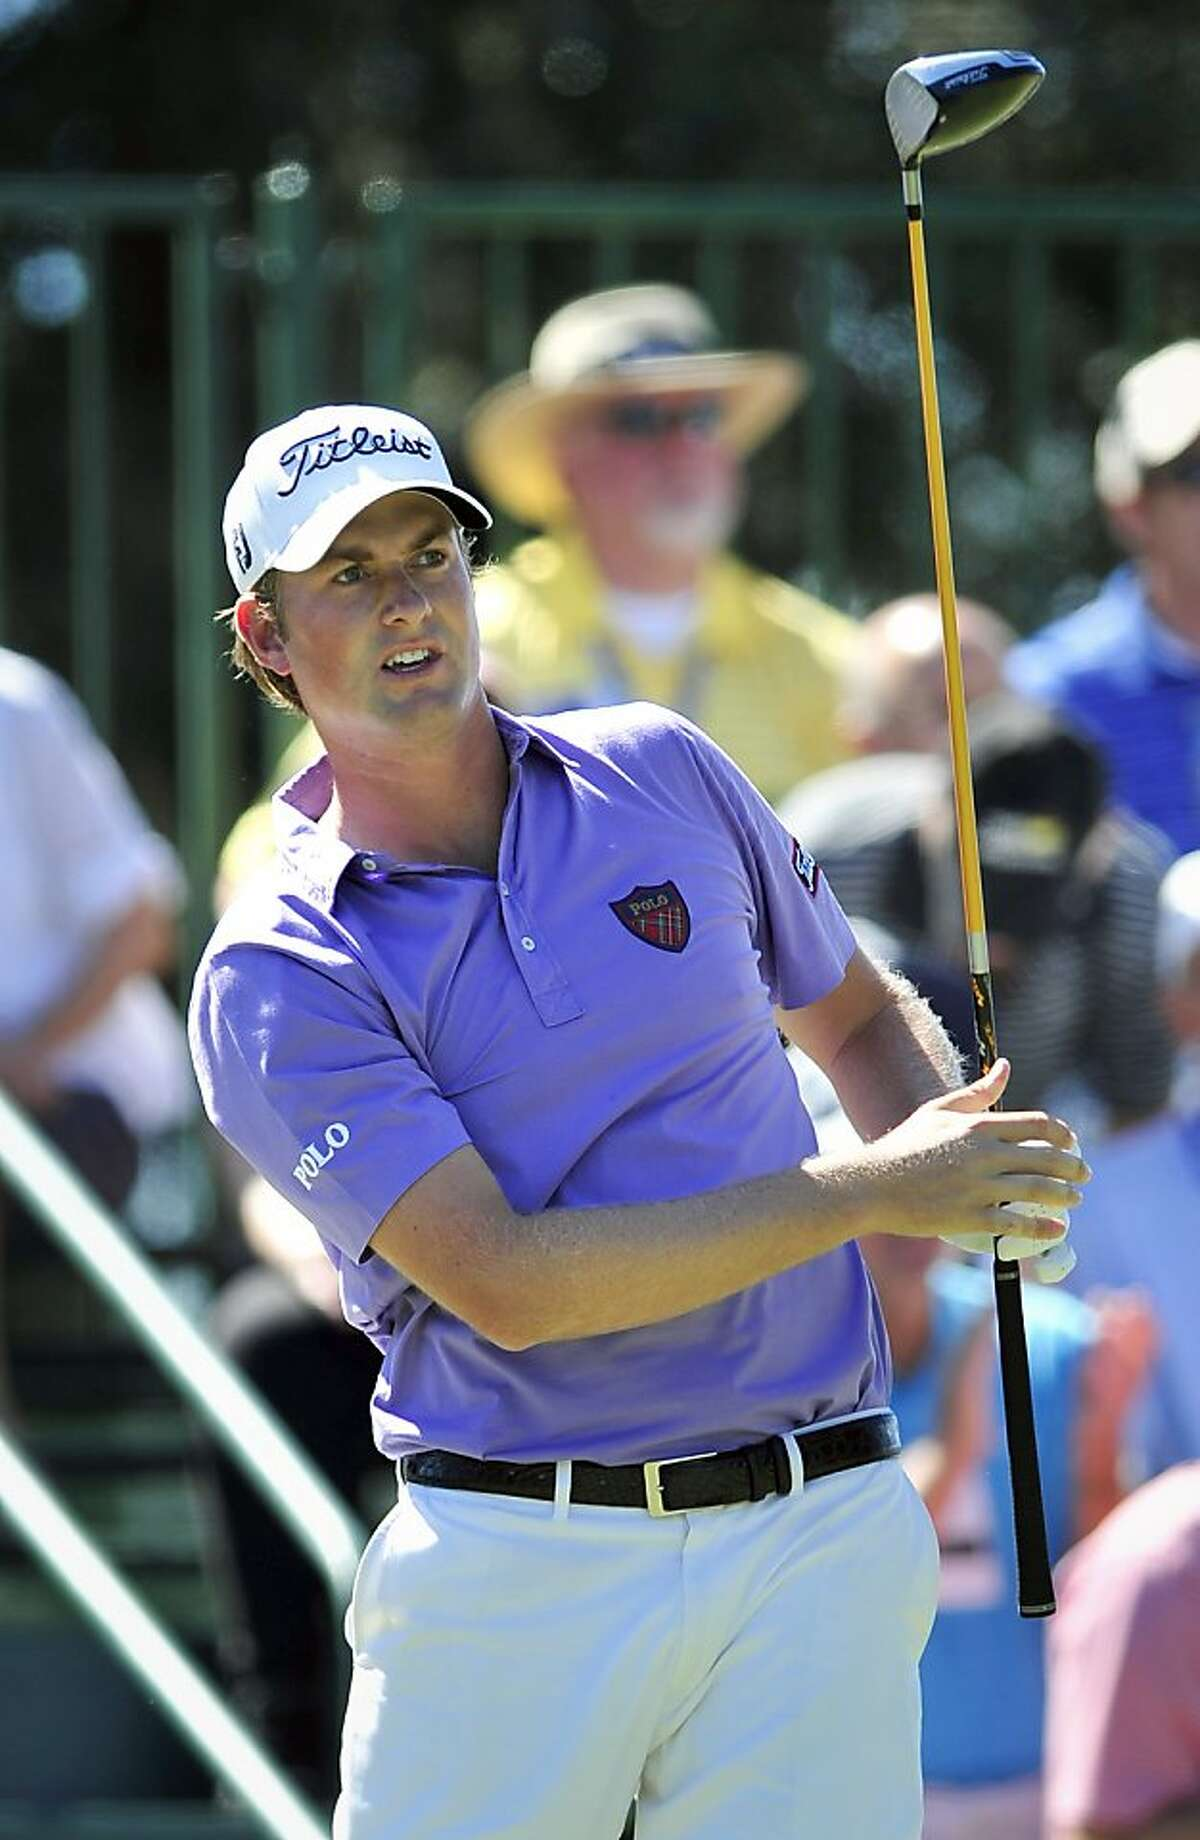 Webb Simpson watches his shot off the first tee during the final round of the McGladrey Classic golf tournament at the Sea Island Golf Club on St. Simons Island, Ga., Sunday, Oct. 16, 2011. (AP Photo/Stephen Morton)